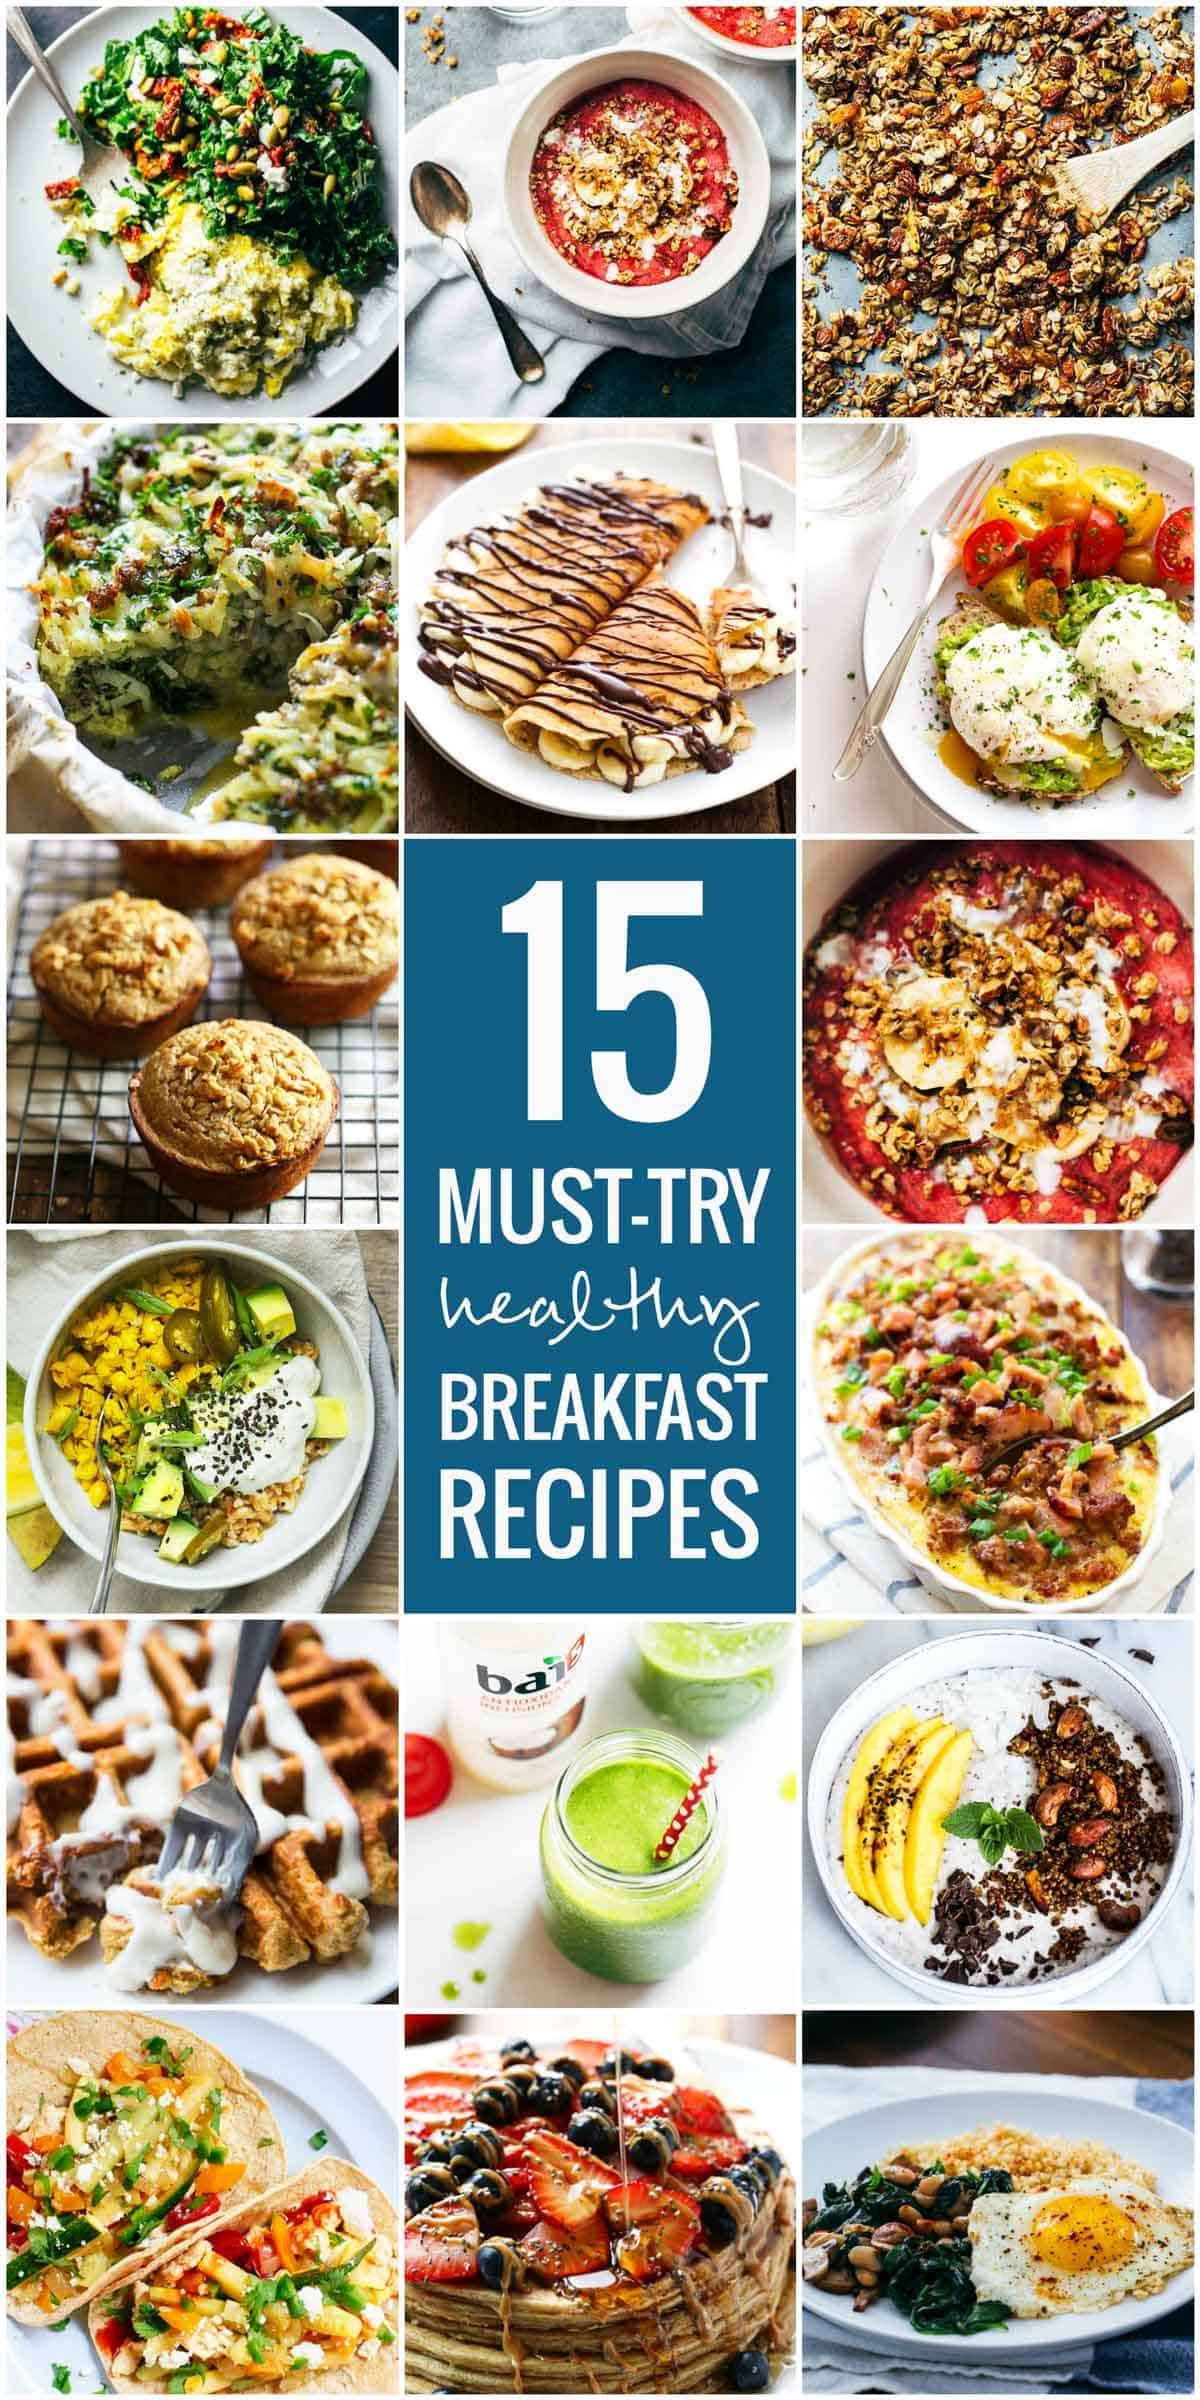 15 must try healthy breakfast recipes pinch of yum 15 must try healthy breakfast recipes forumfinder Gallery